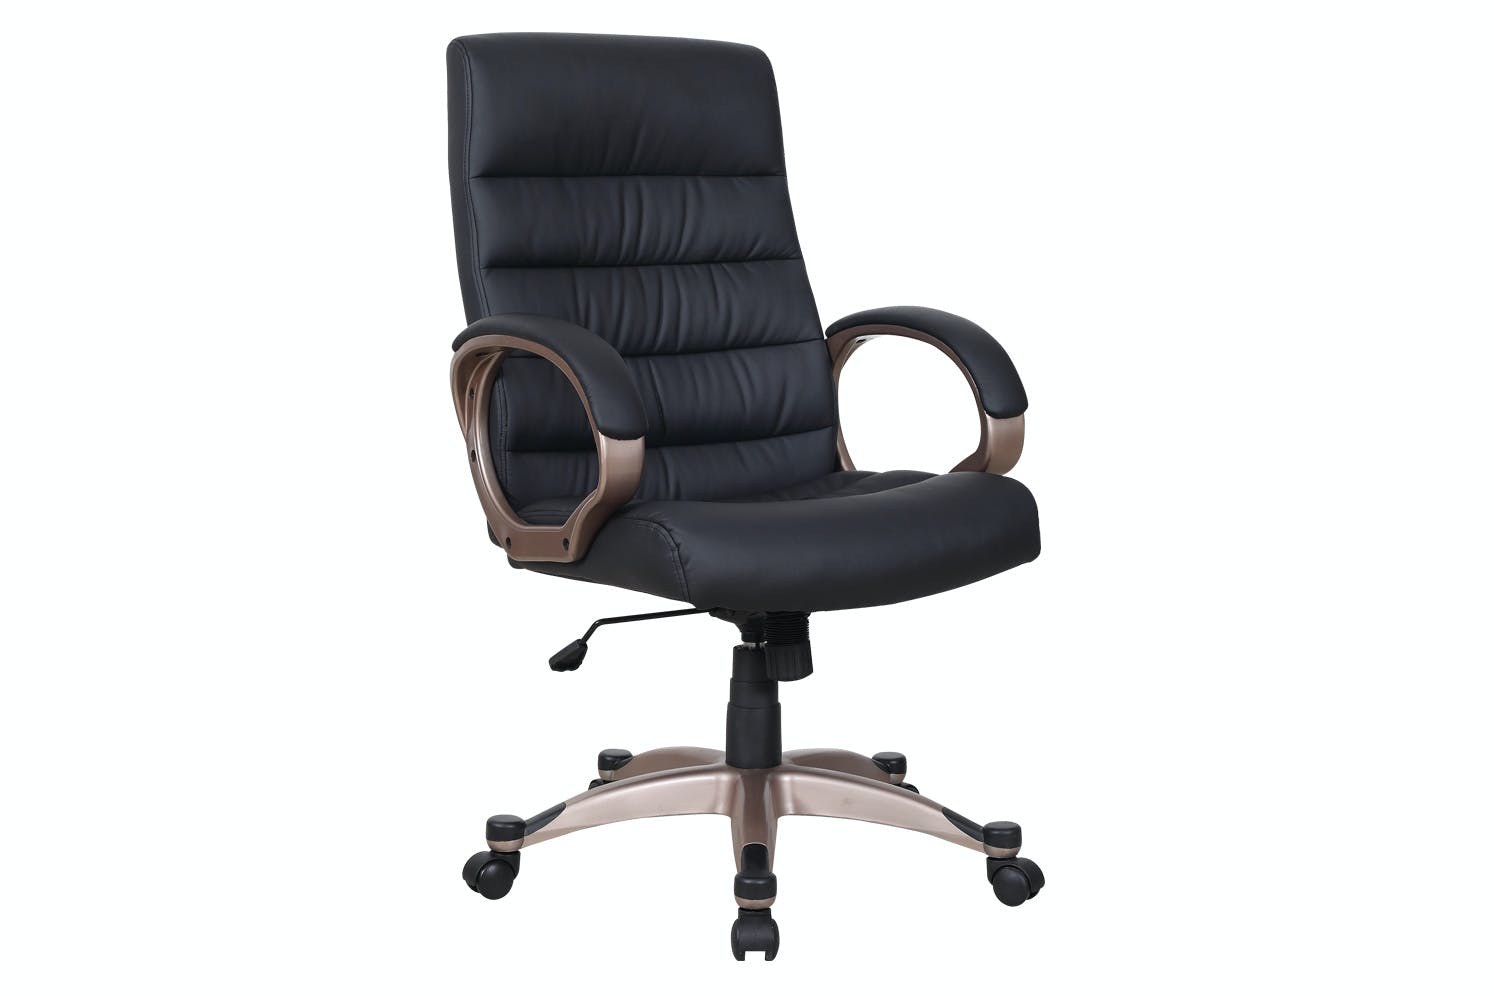 design winsome furniture ebay images chairs amazing office